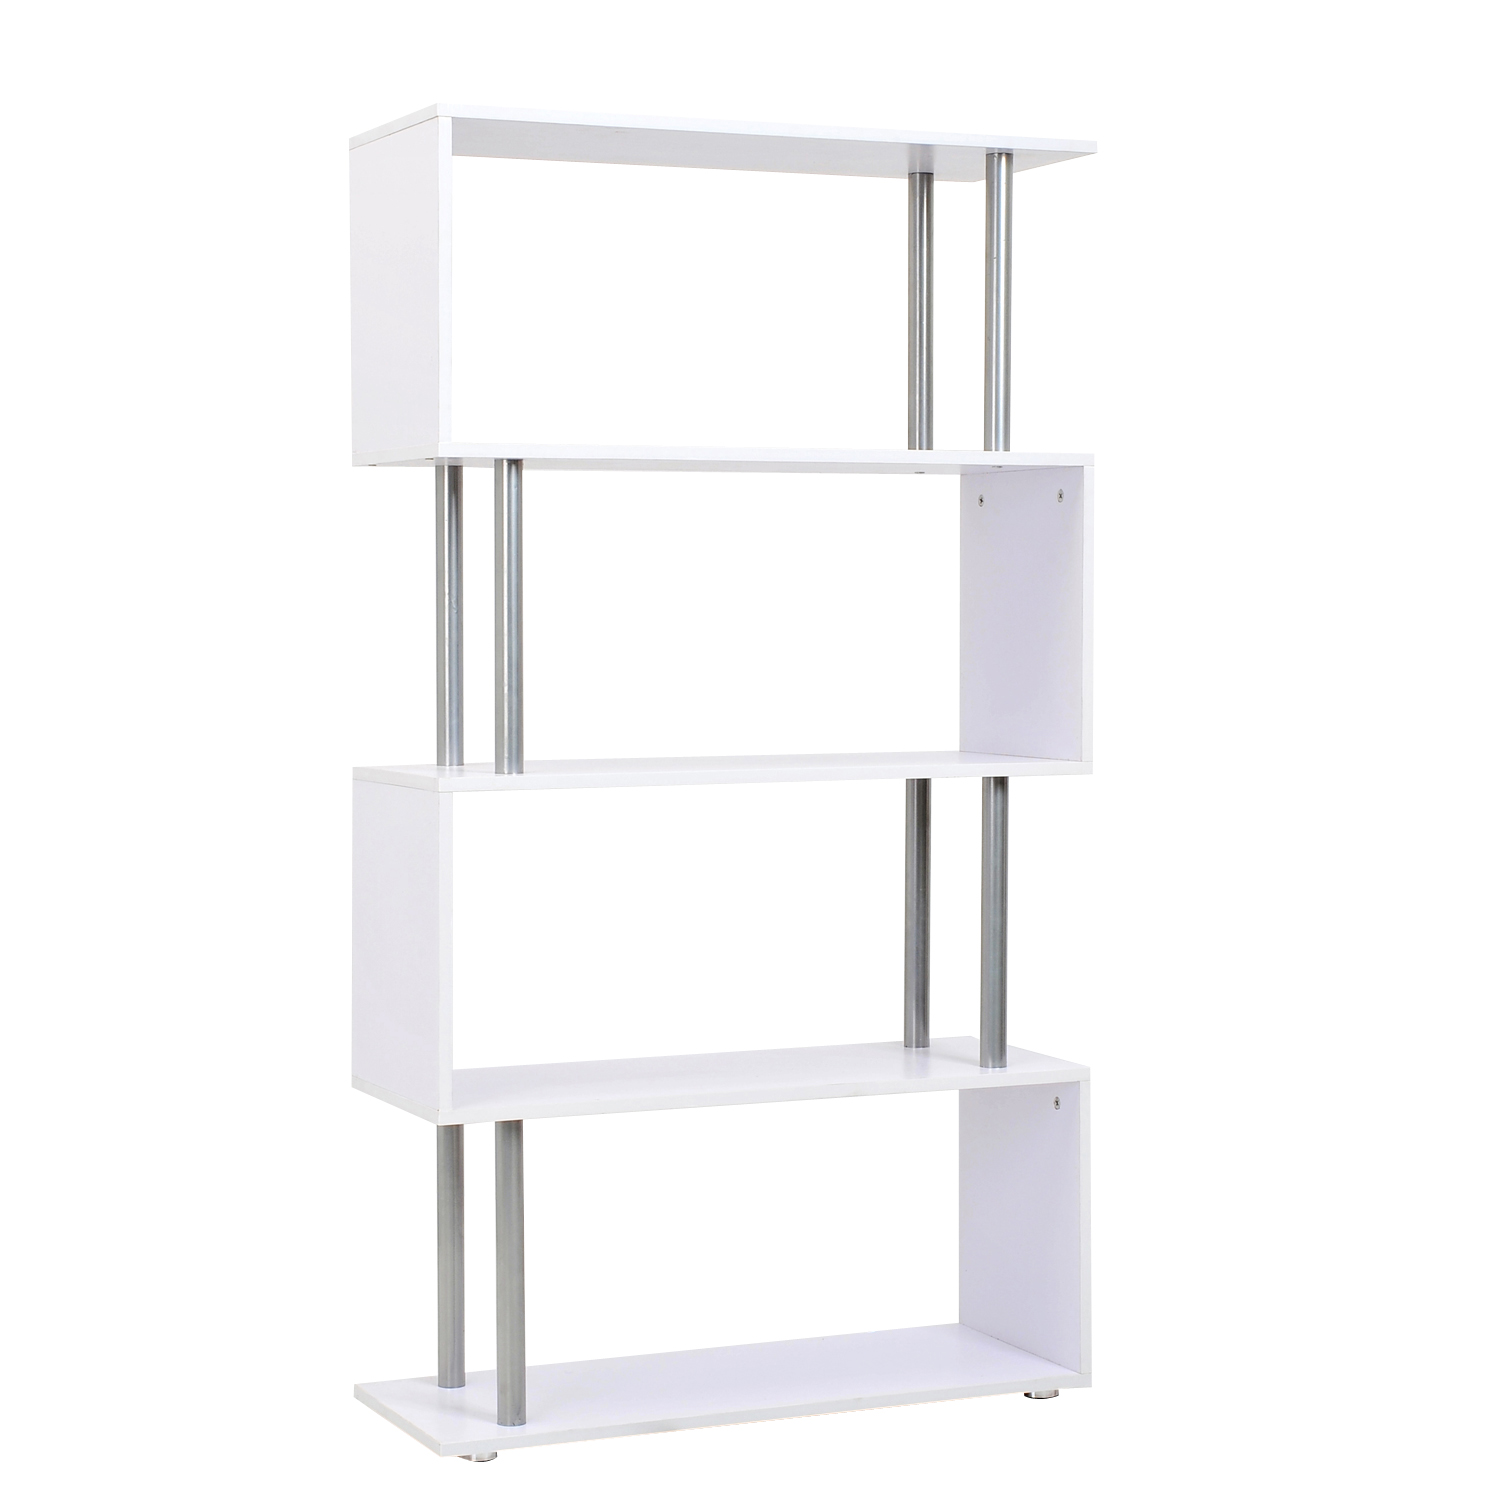 HOMCOM Bookcase Design Modern 4 Shelves Floor Living Room Study Wooden 80 × 30 × 145cm White